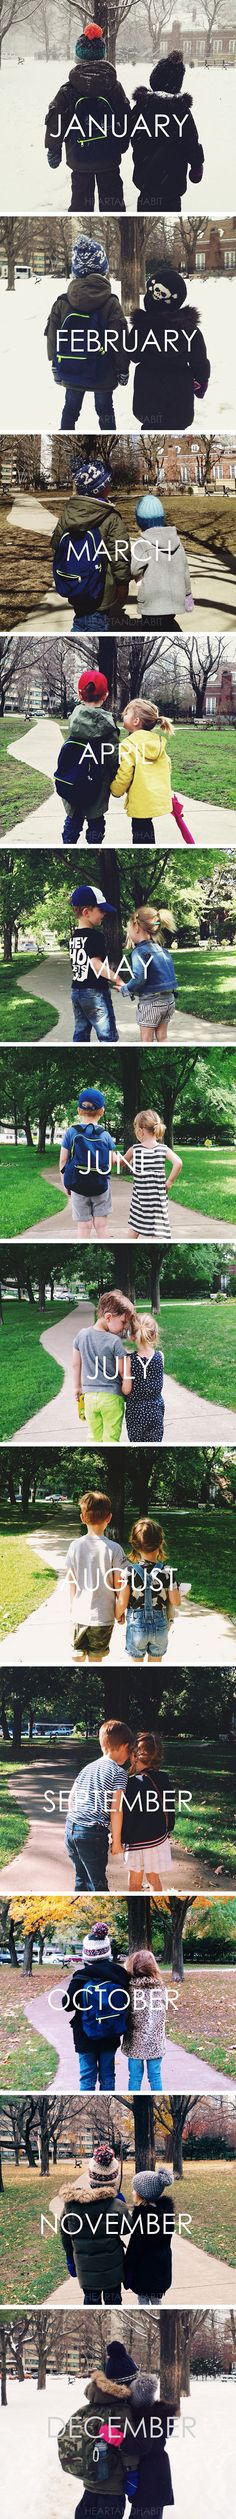 1 photo a month, same spot, photo project. so precious.